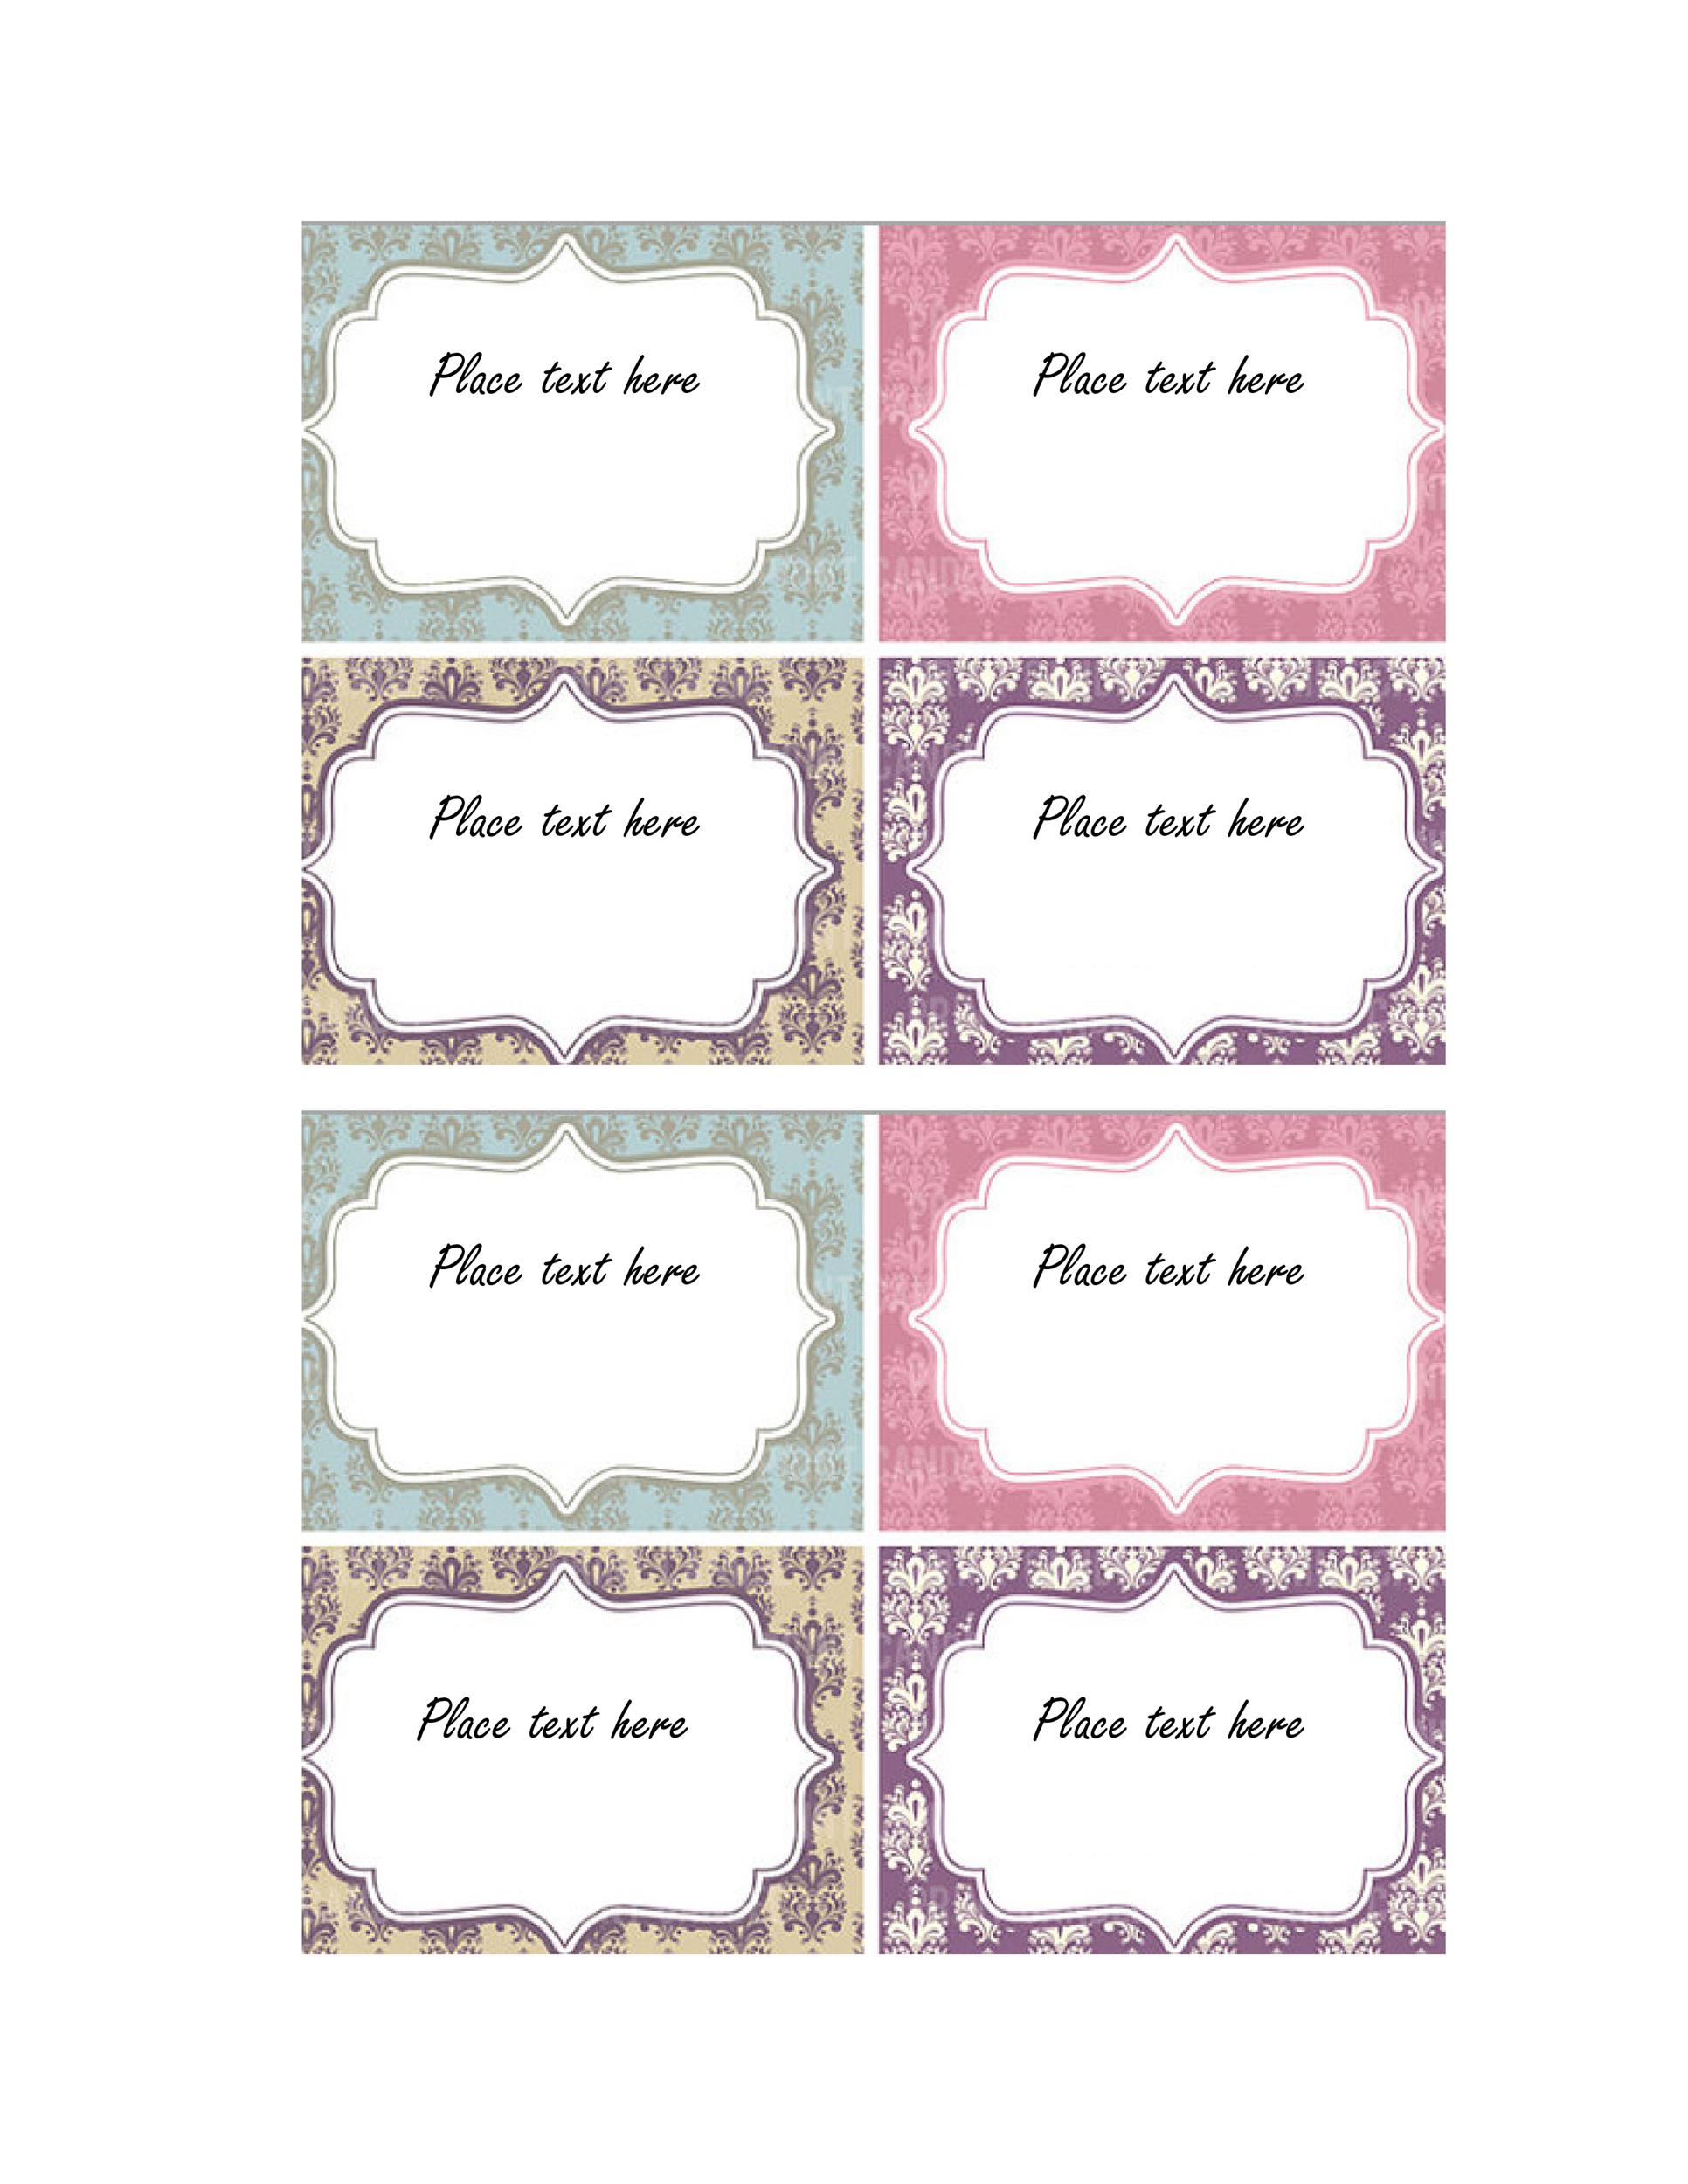 image relating to Diy Gift Tags Free Printable named 44 Cost-free Printable Reward Tag Templates ᐅ Template Lab